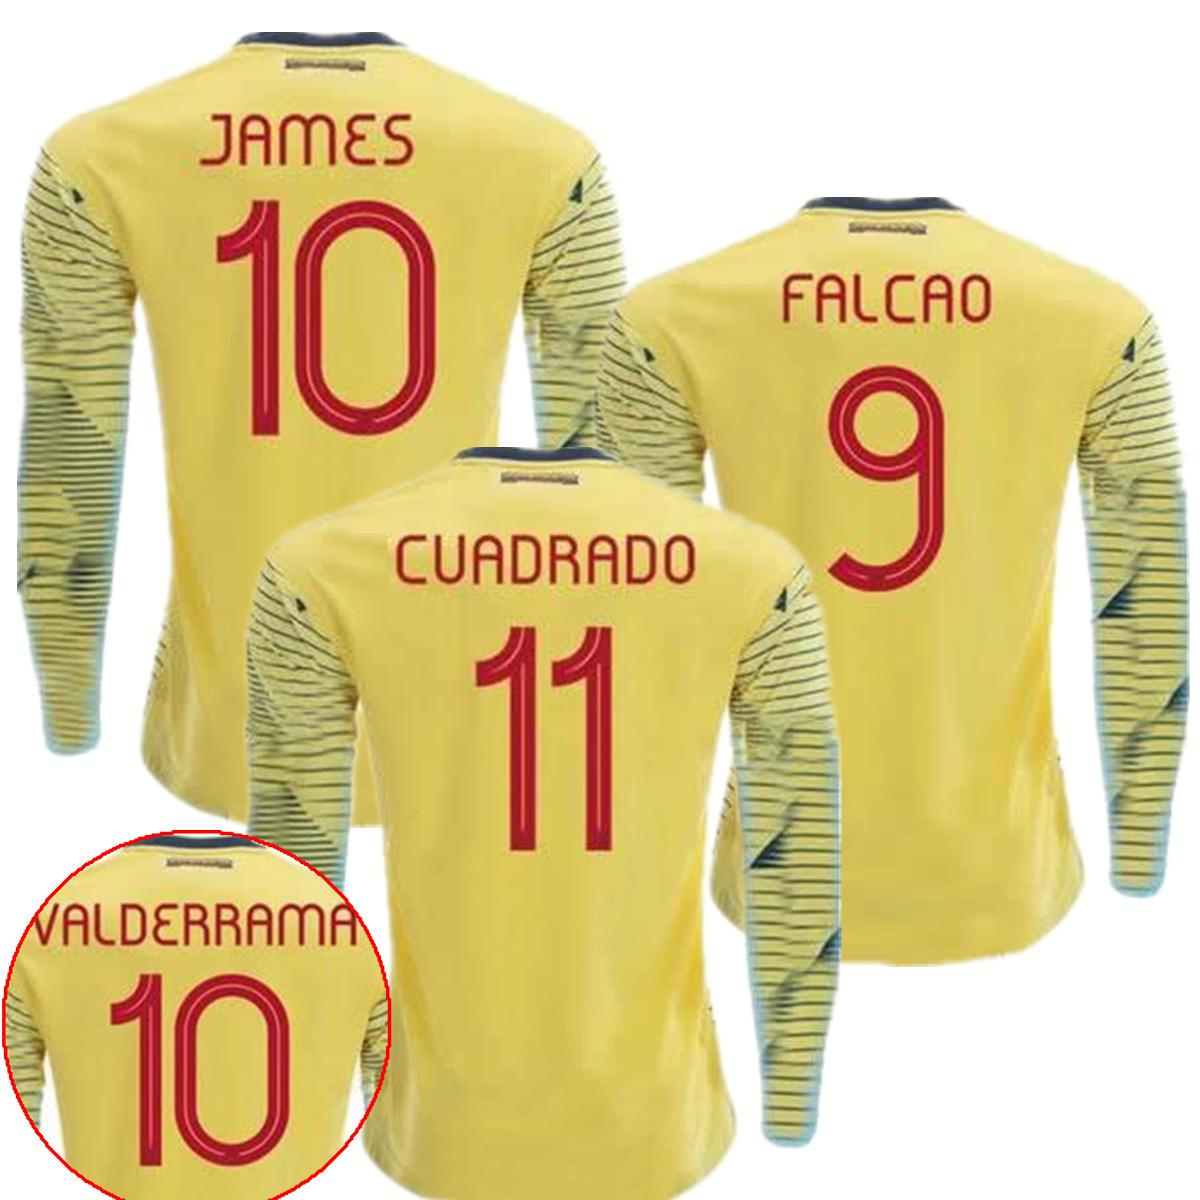 low priced 714ba c760b 2019 Colombia Soccer Jersey Falcao James Rodriguez Long Sleeve Football  SHIRTS Sanchez Copa America Colombia #10 JAMES Camiseta de Futbol